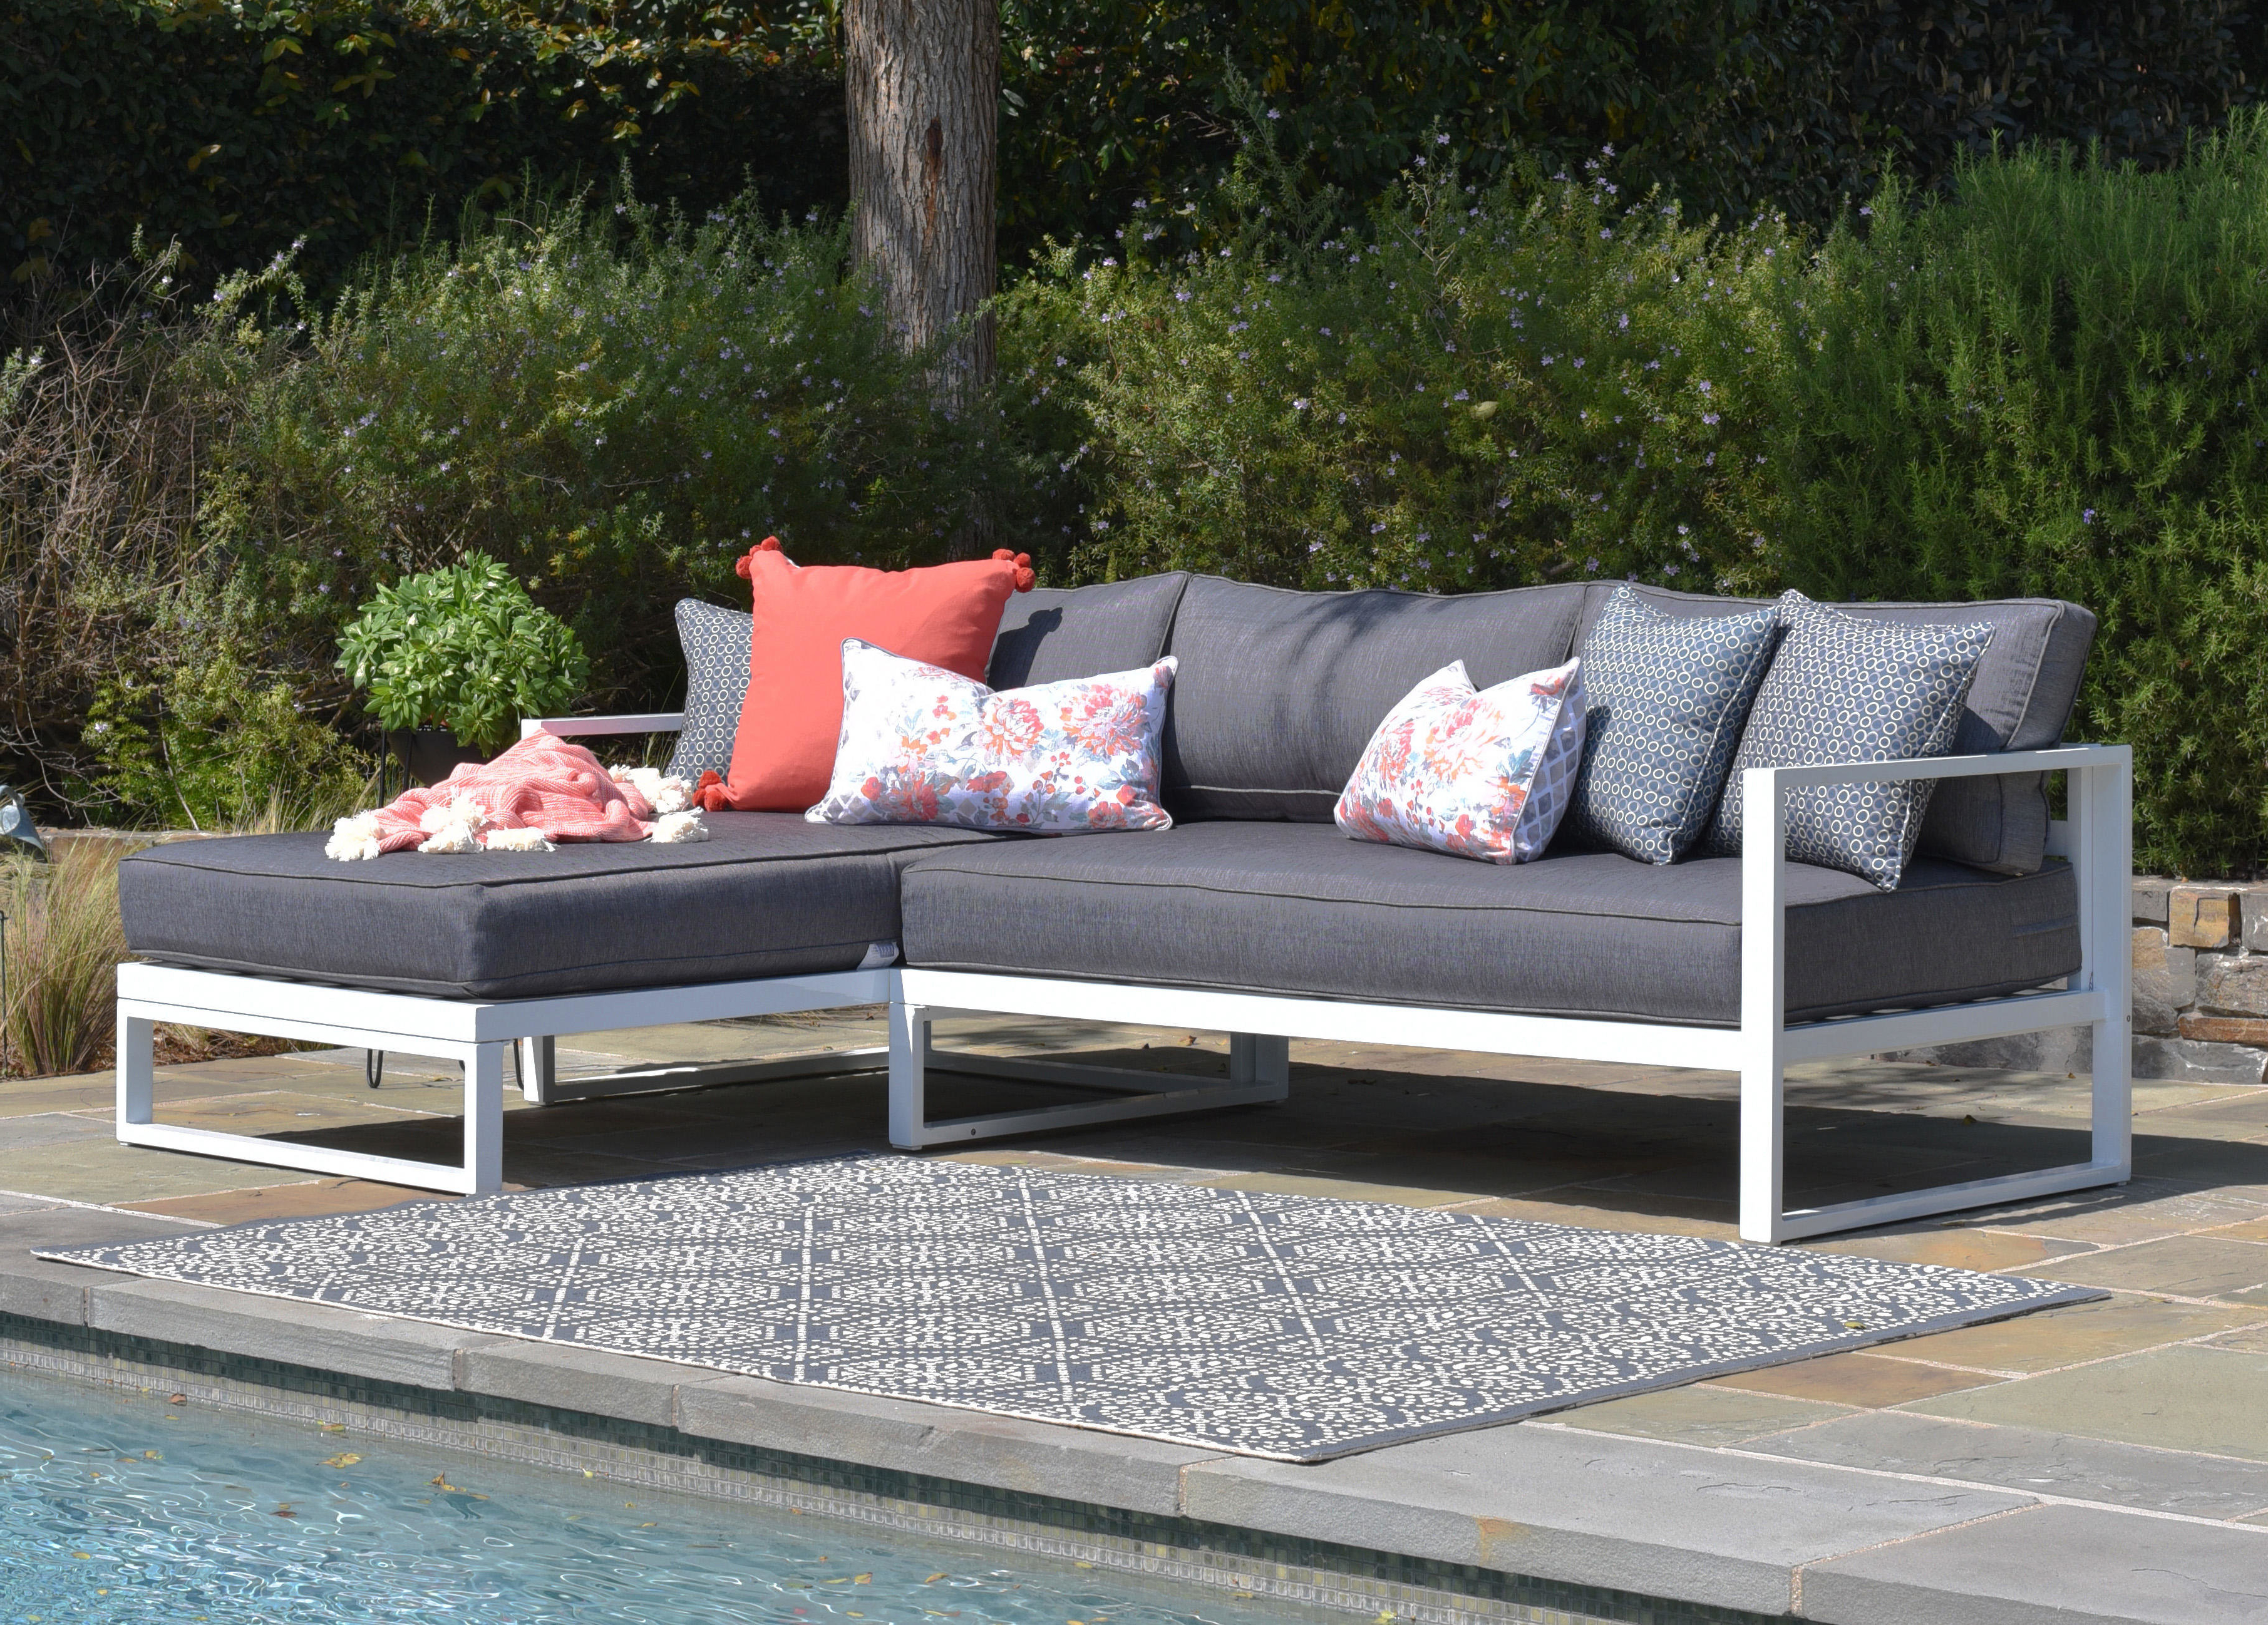 Outdoor Sectional Small Space (View 9 of 20)